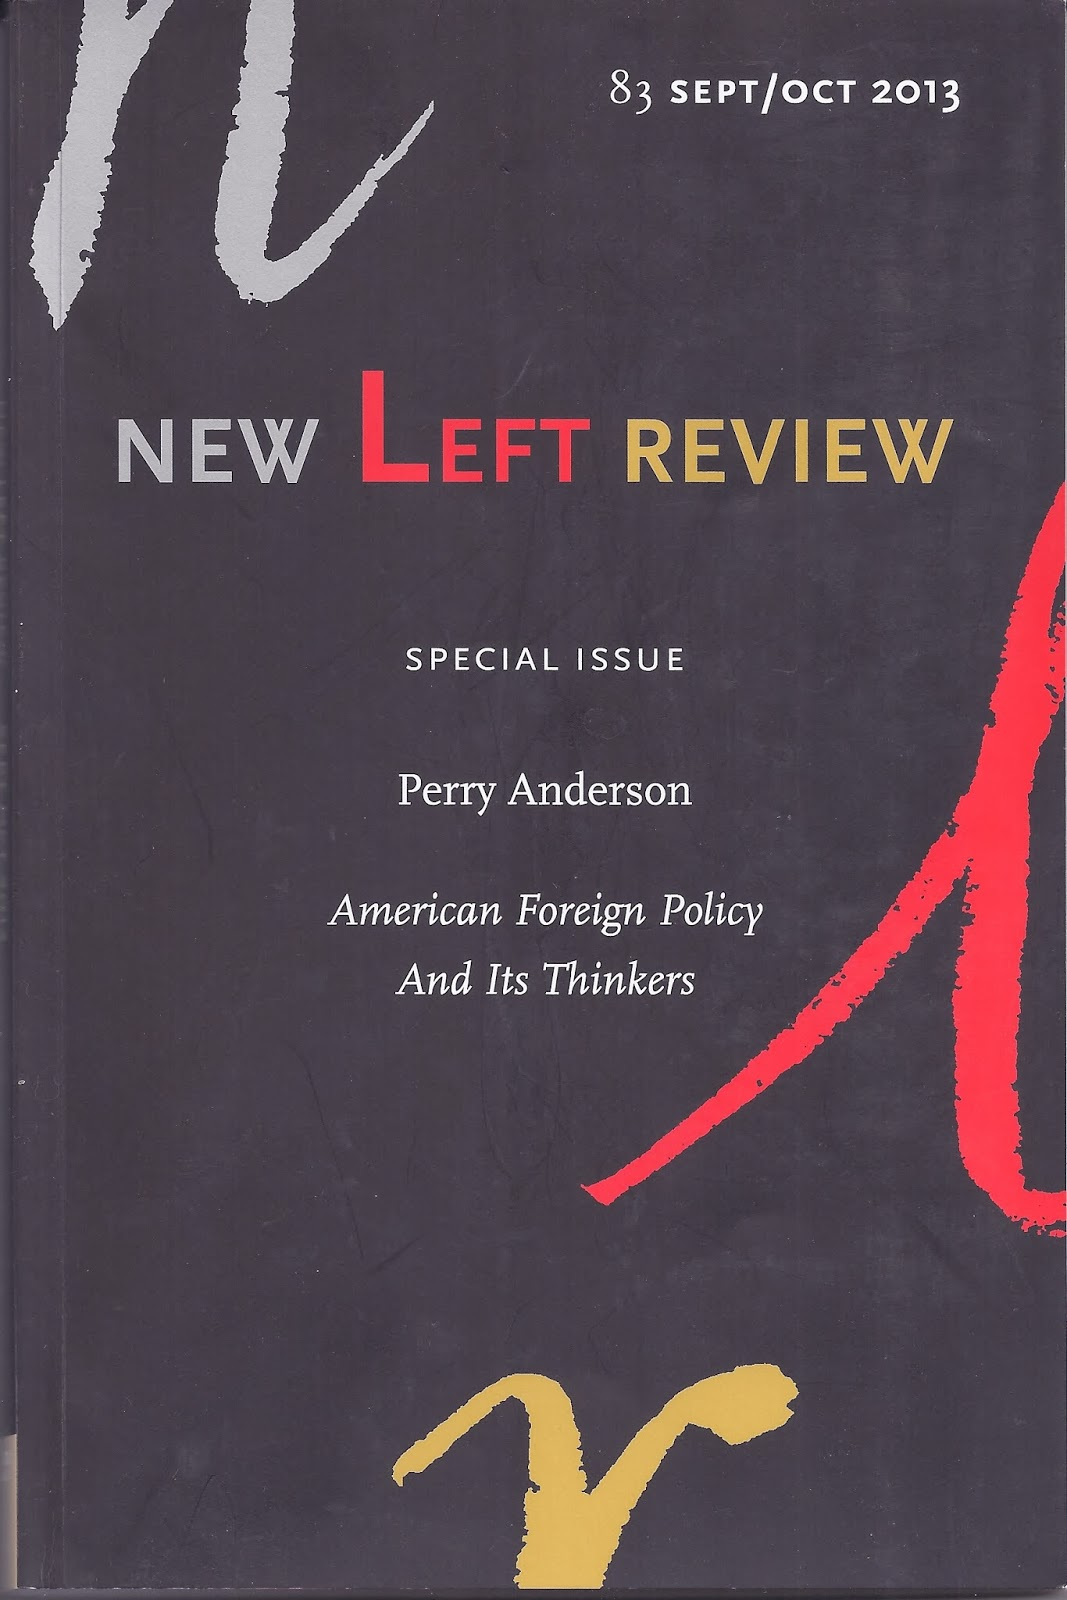 reading this book cover to cover  review perry anderson american foreign policy and its thinkers